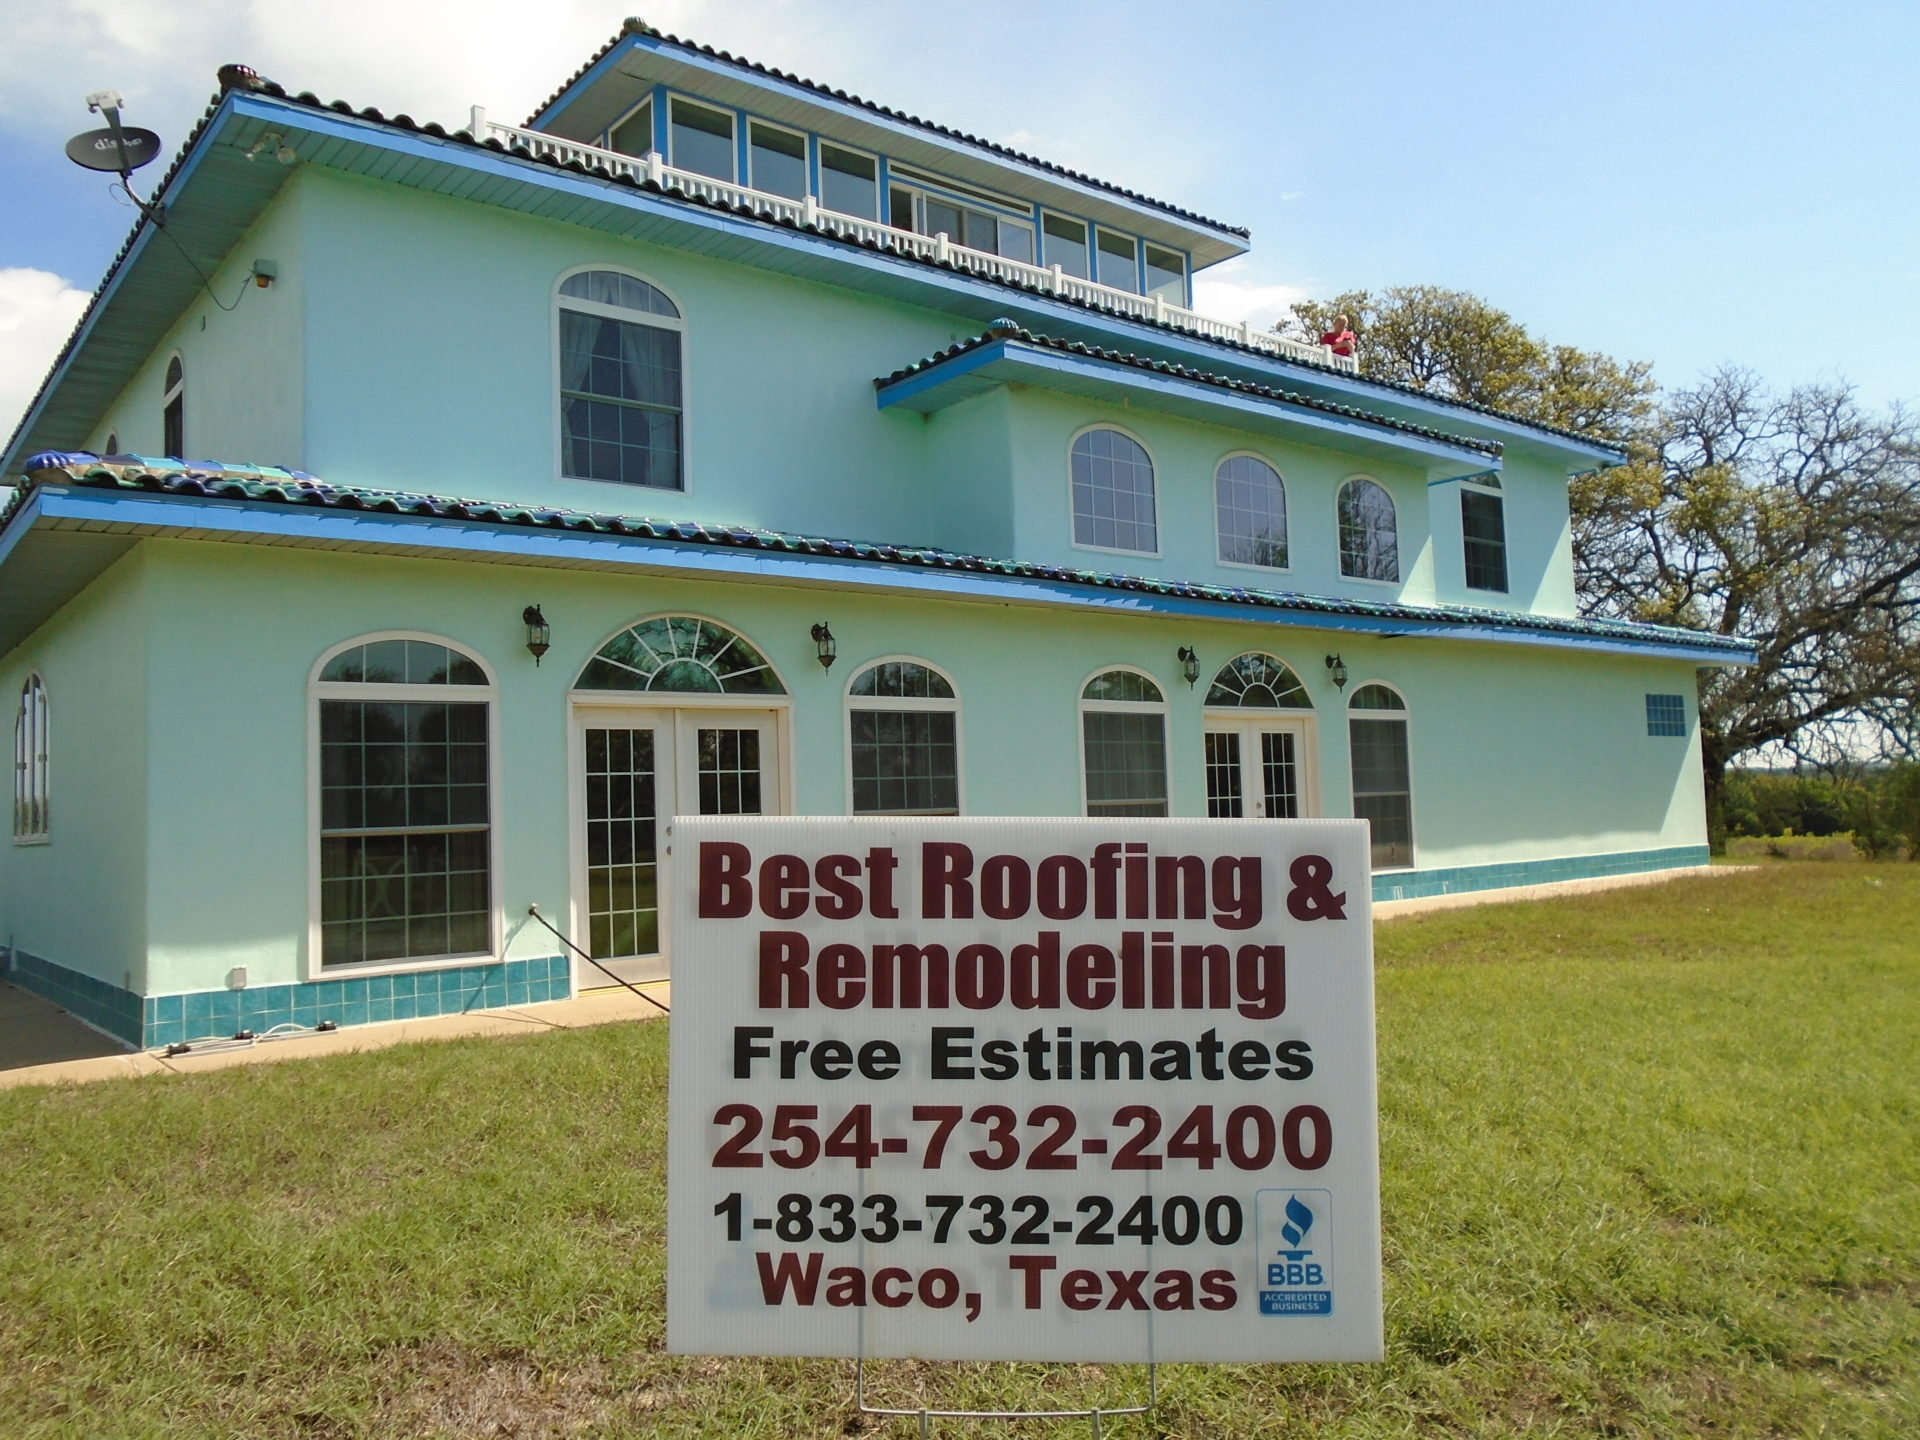 Best Roofing & Remodeling Waco Free Estimates